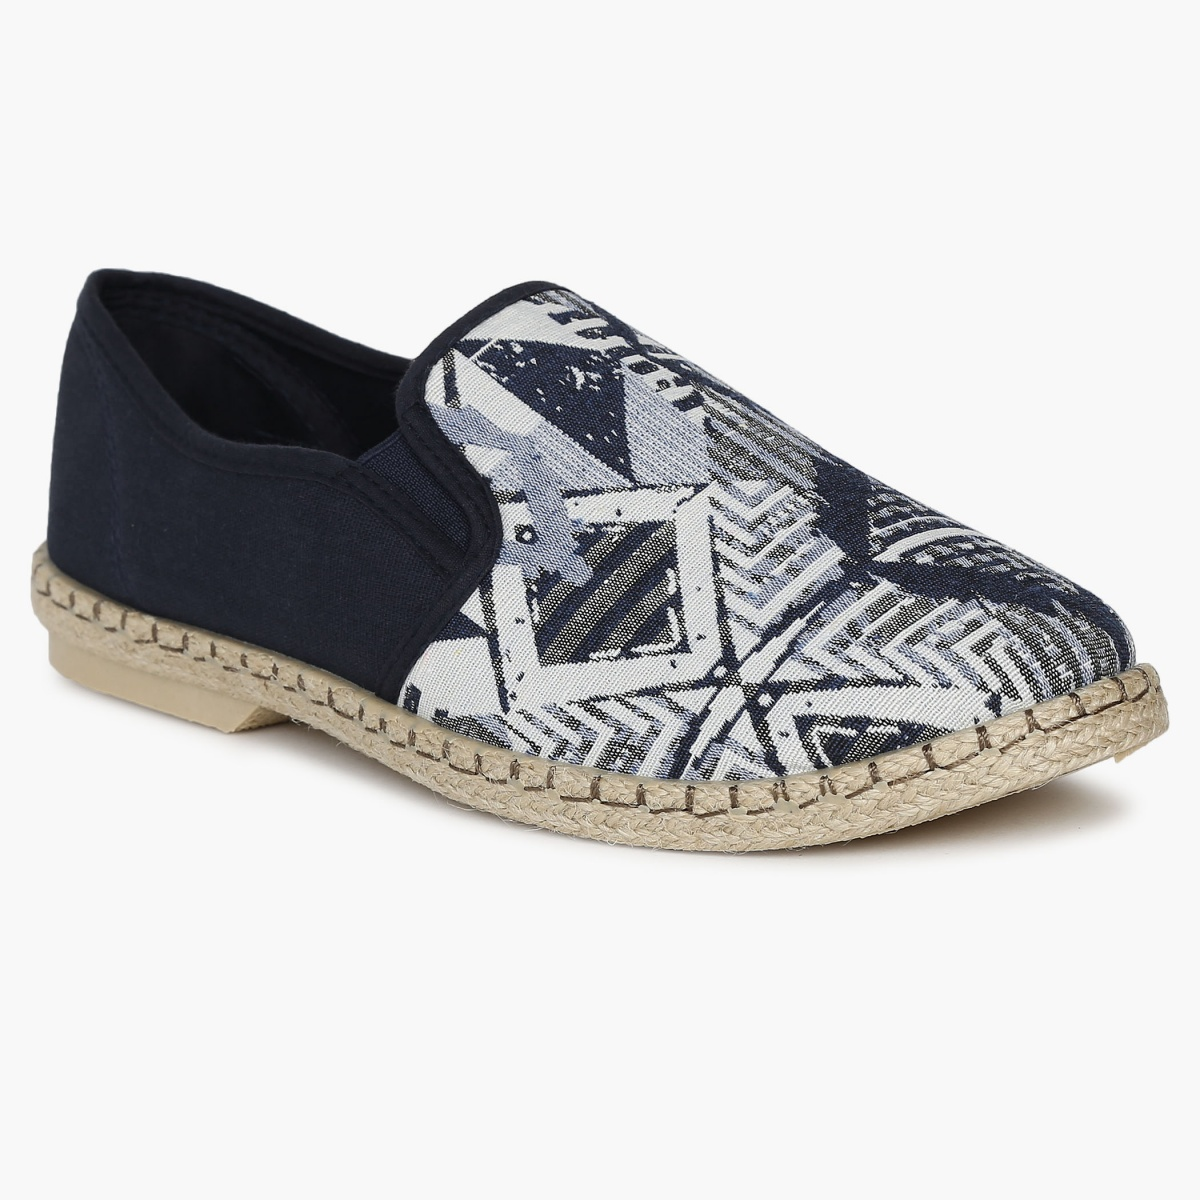 FORCA Espadrille Slip Ons